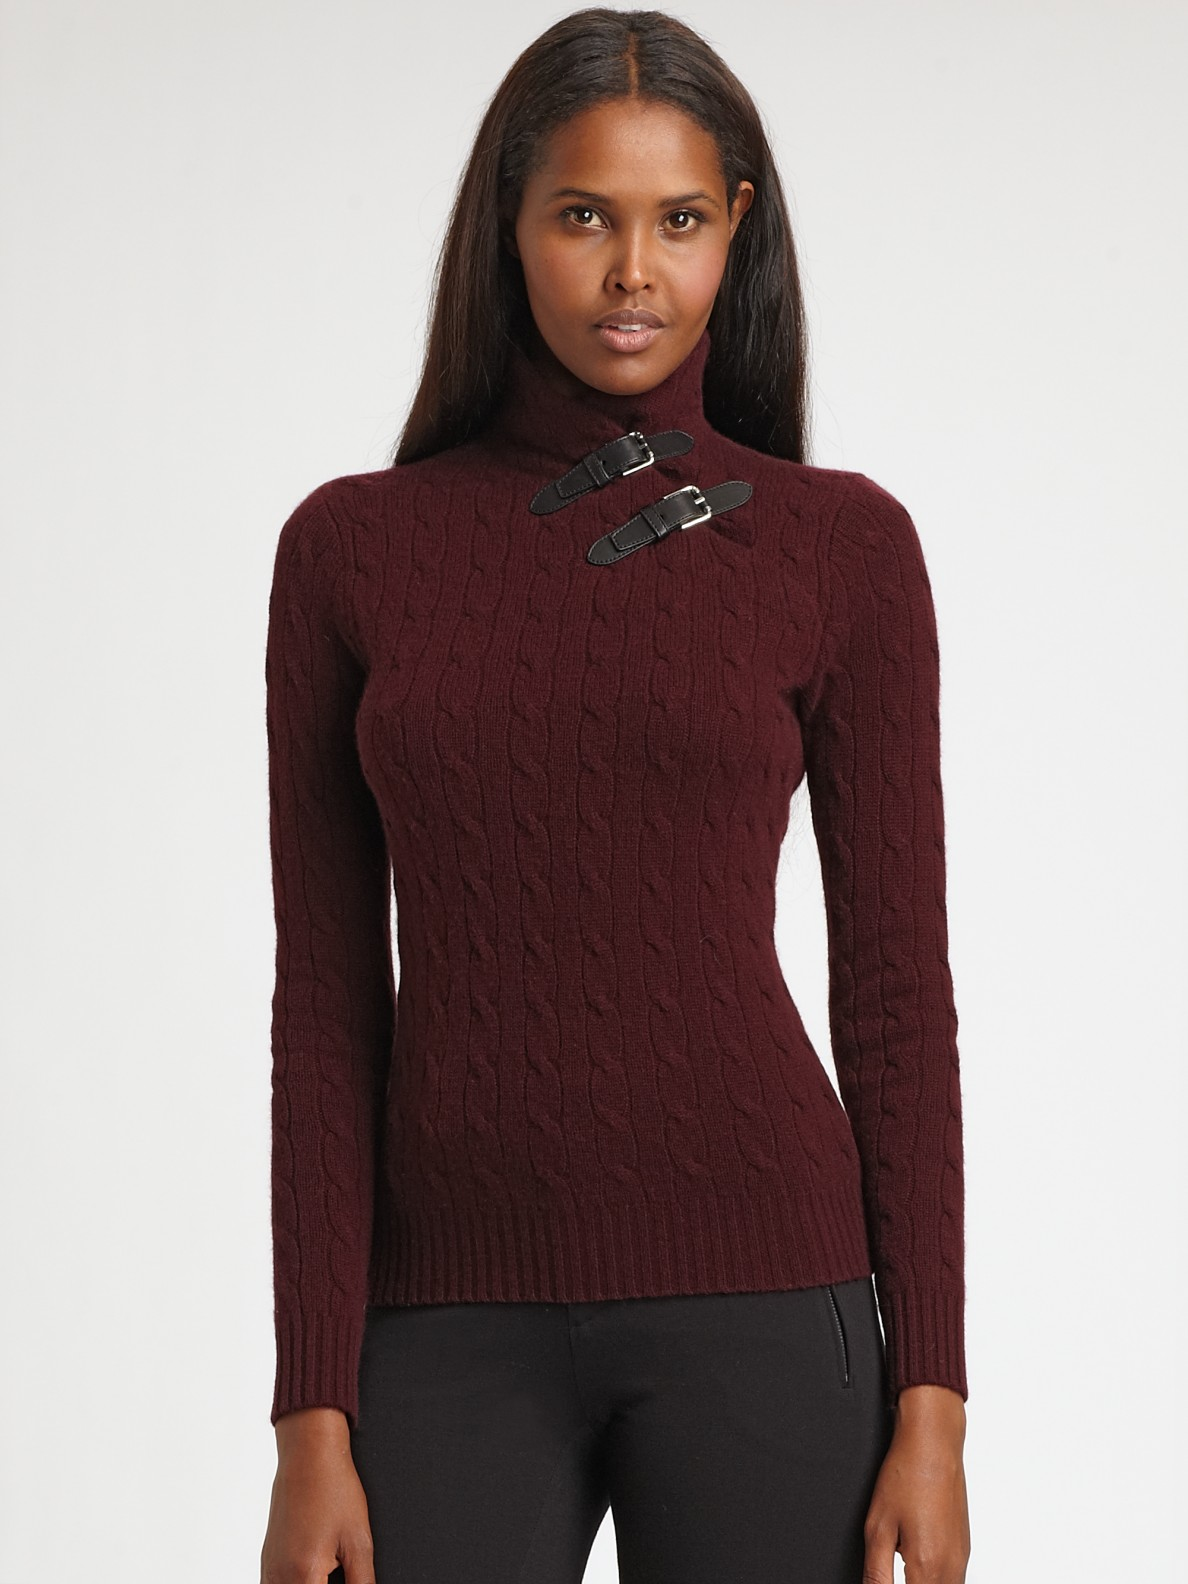 b85d9f4a8 Ralph Lauren Black Label Cashmere Buckle Sweater in Red - Lyst